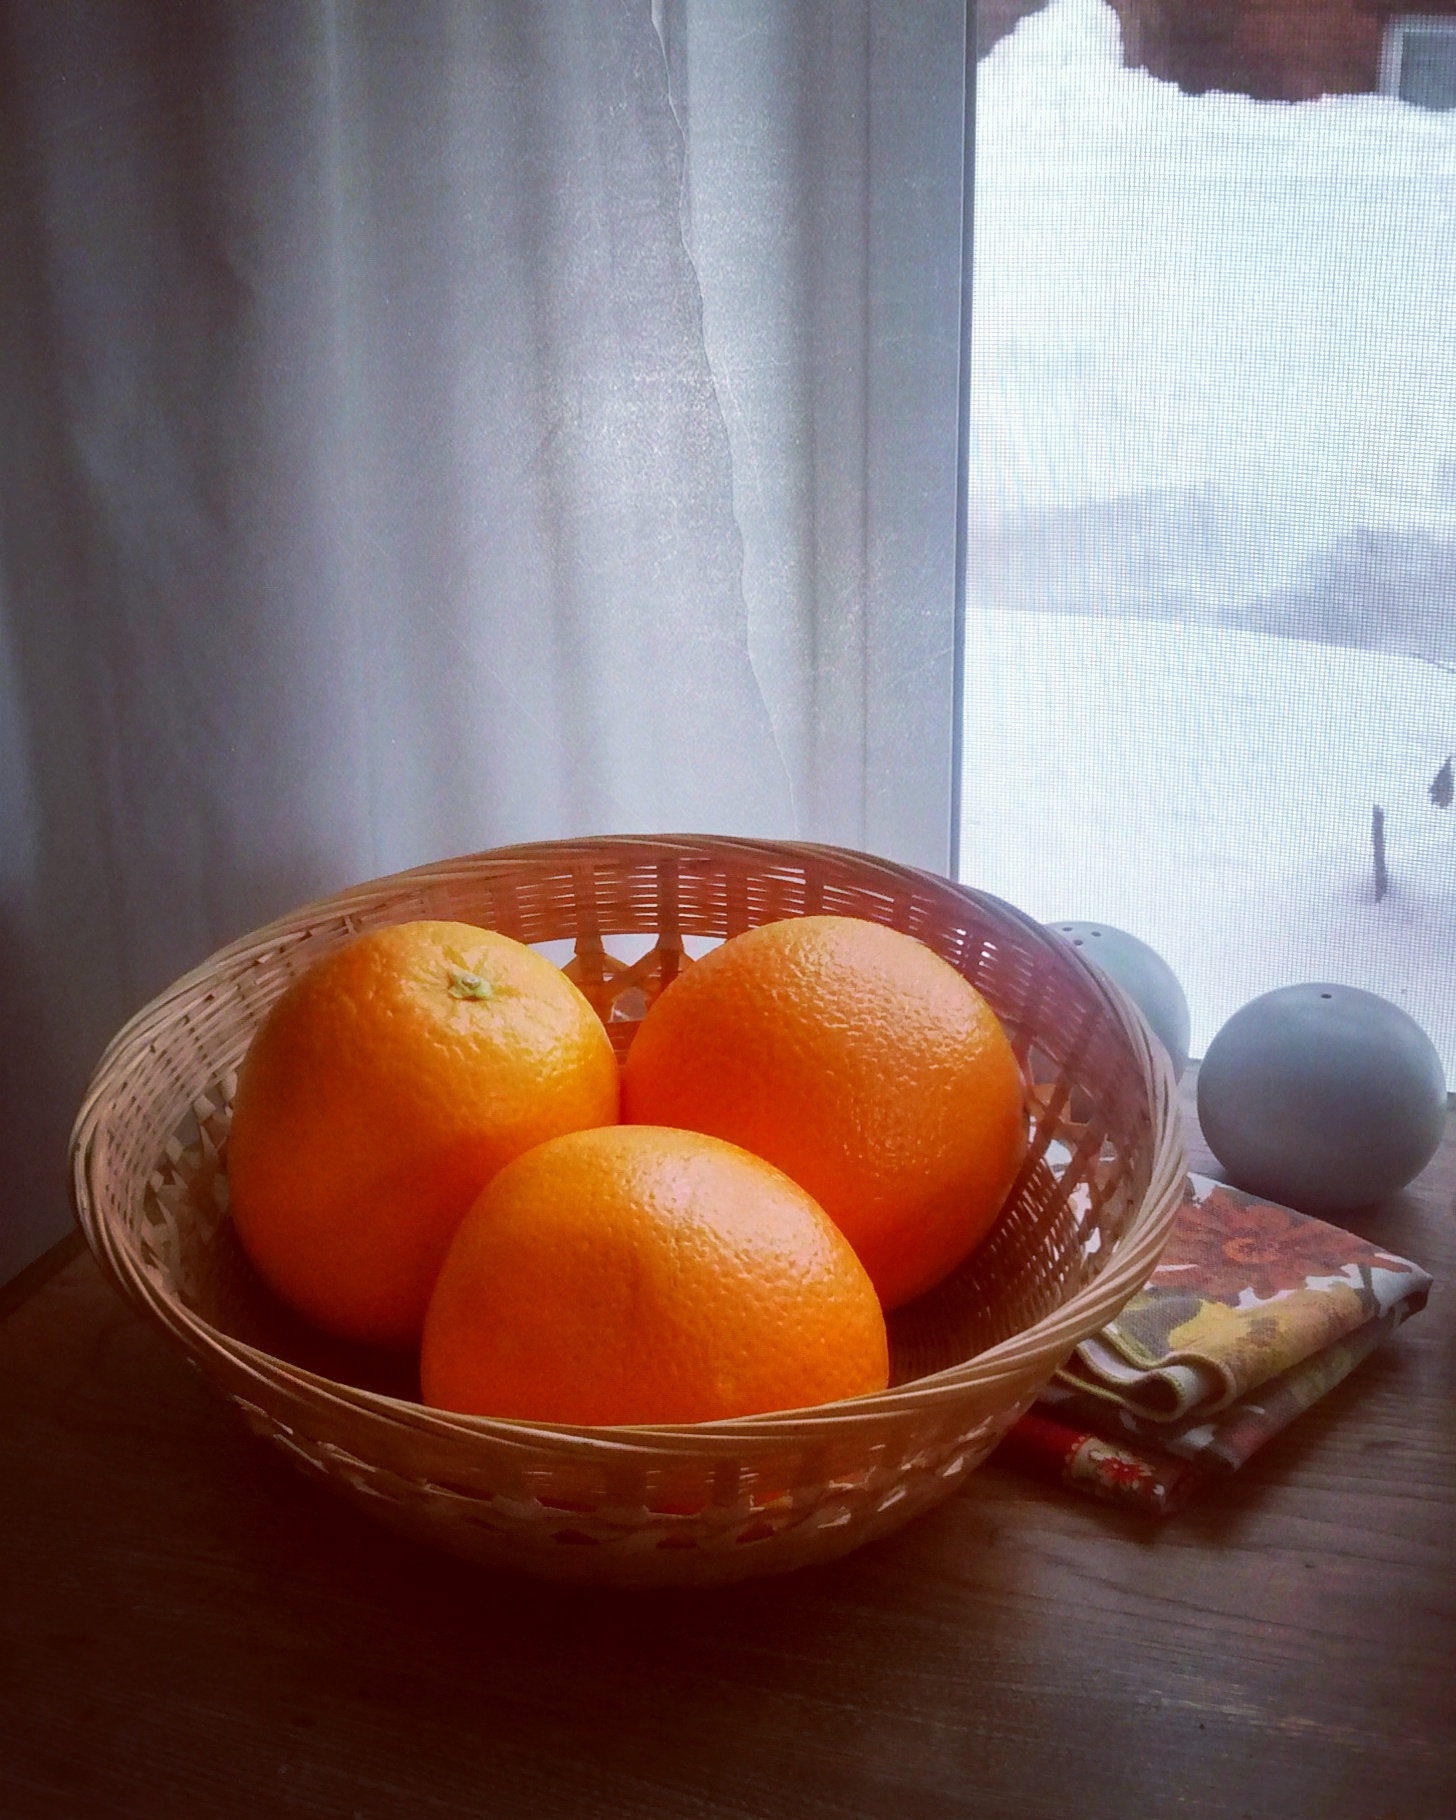 Women's Creative Health Coach | Lily Calfee + Ideal Nourishment | Oranges and Self-Love